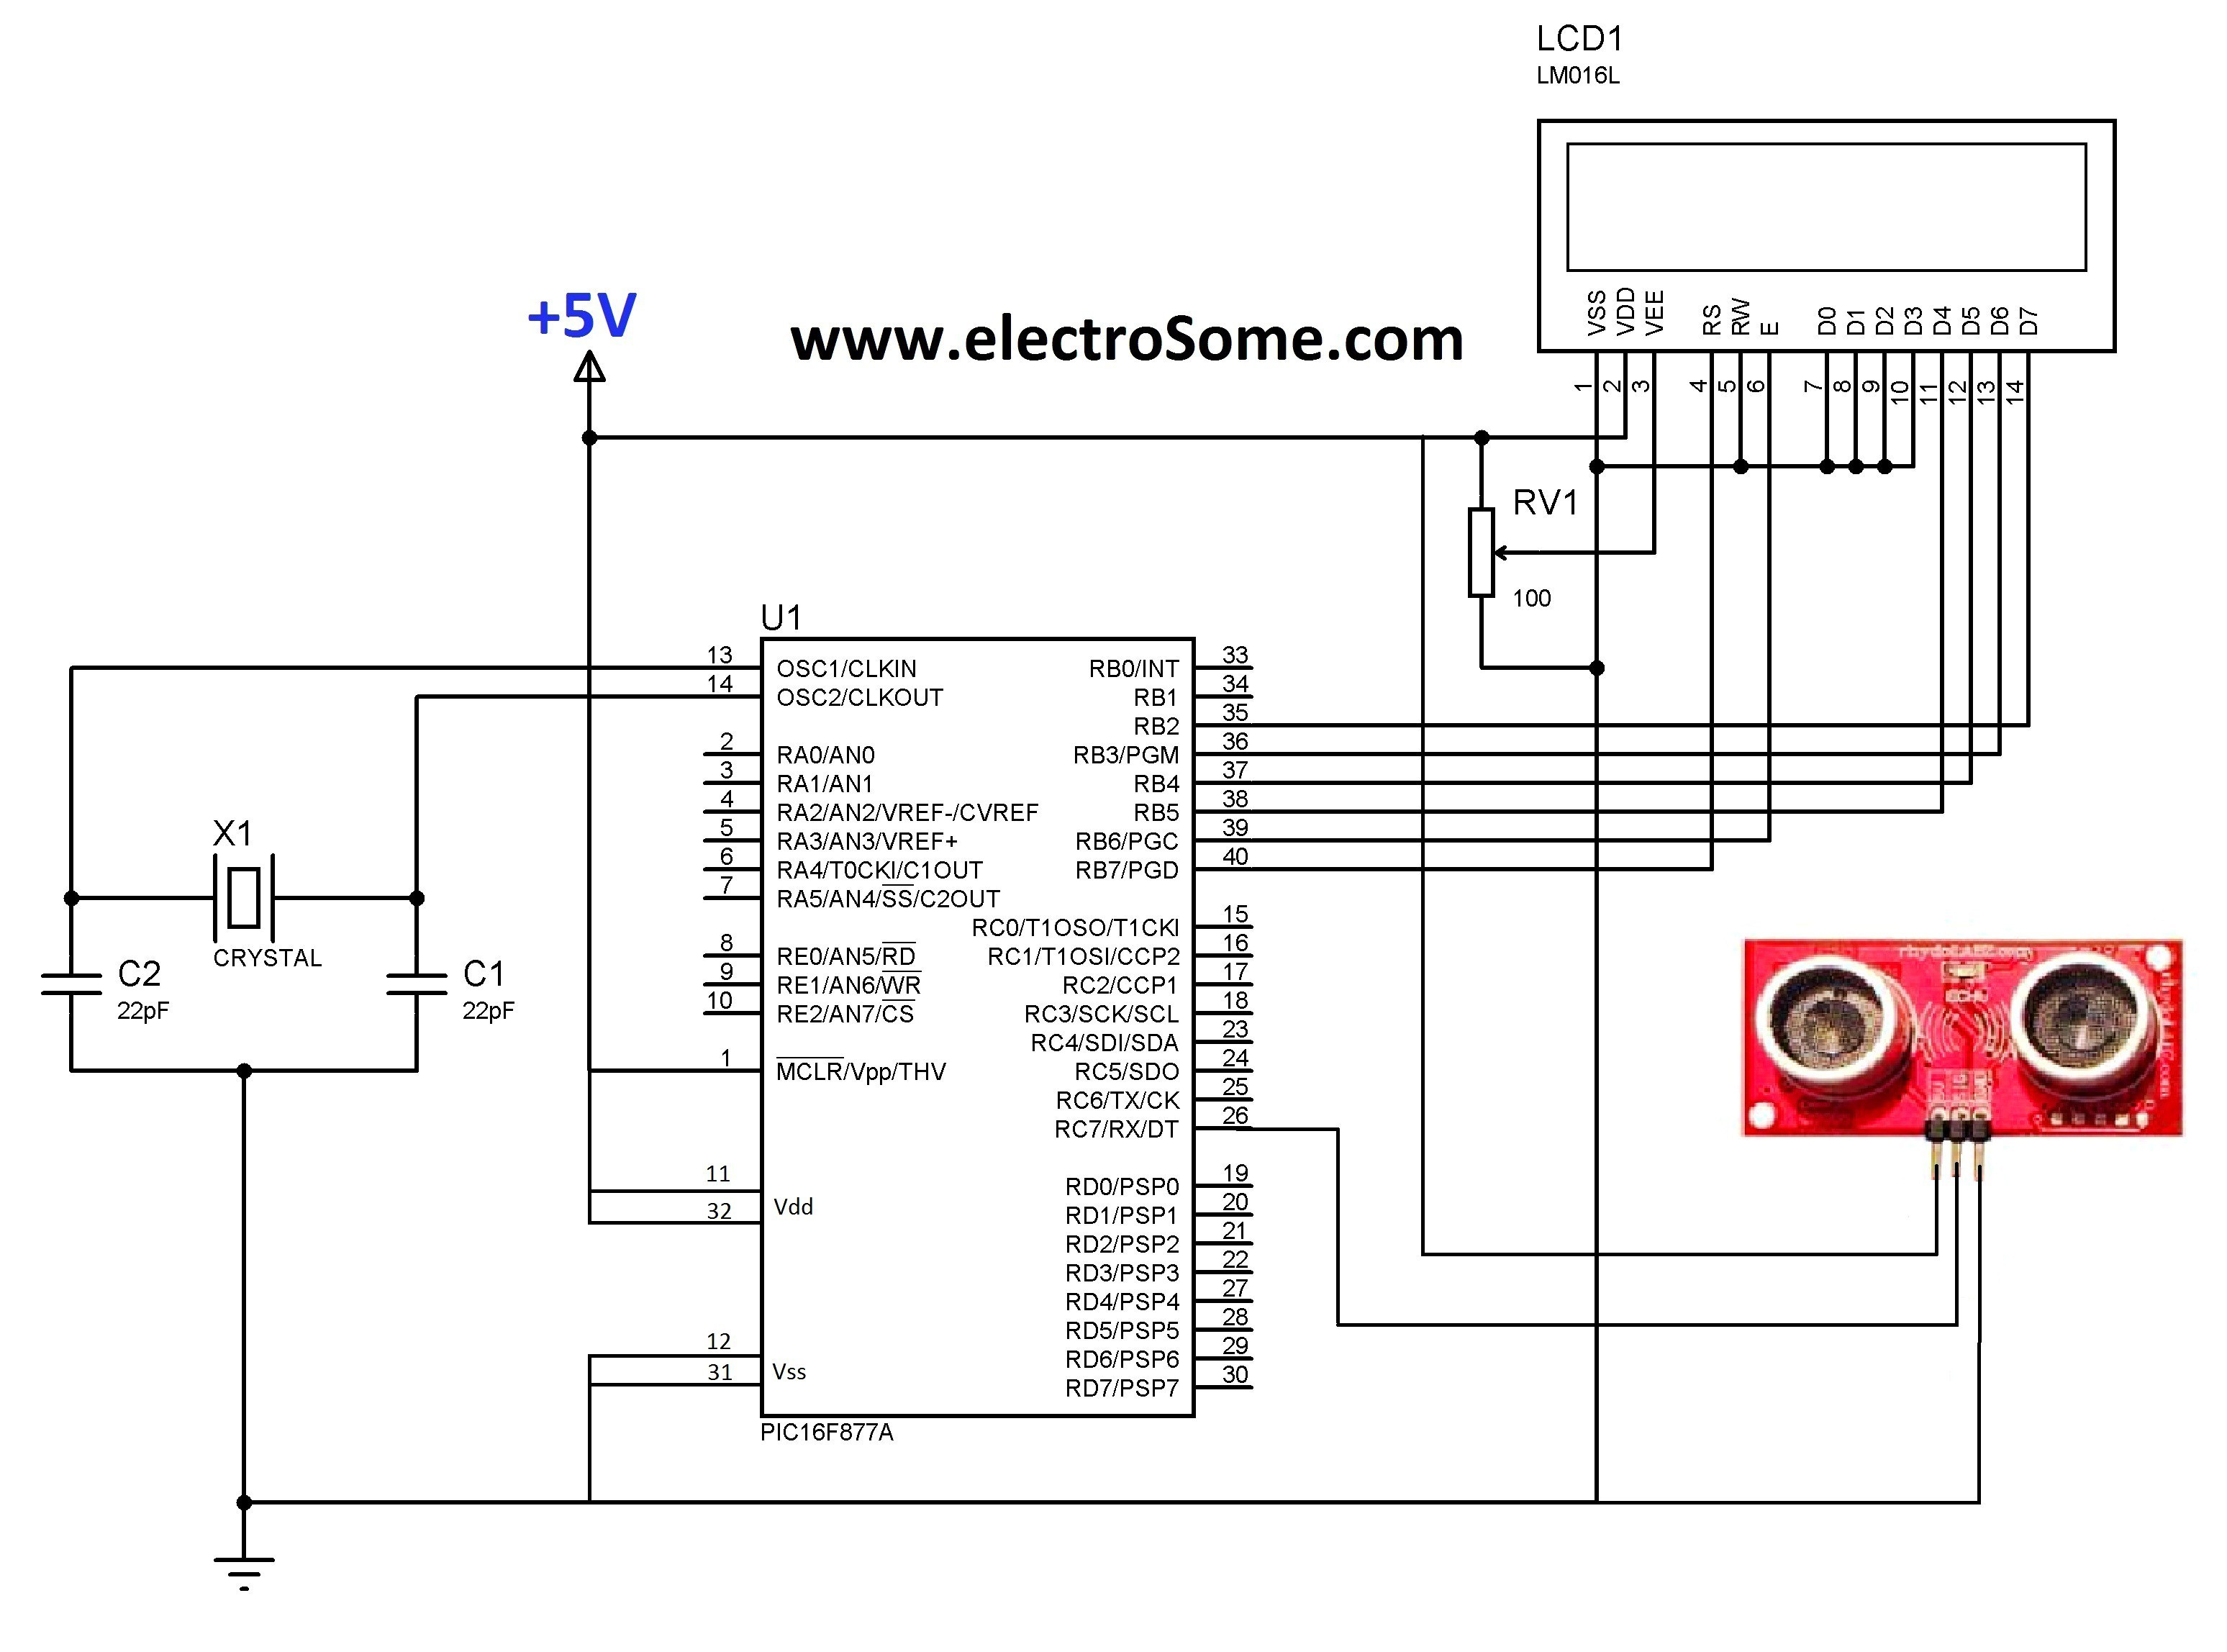 Lighting Contactor with Photocell F62dca3 tork Lighting Contactor Wiring Diagram Of Lighting Contactor with Photocell